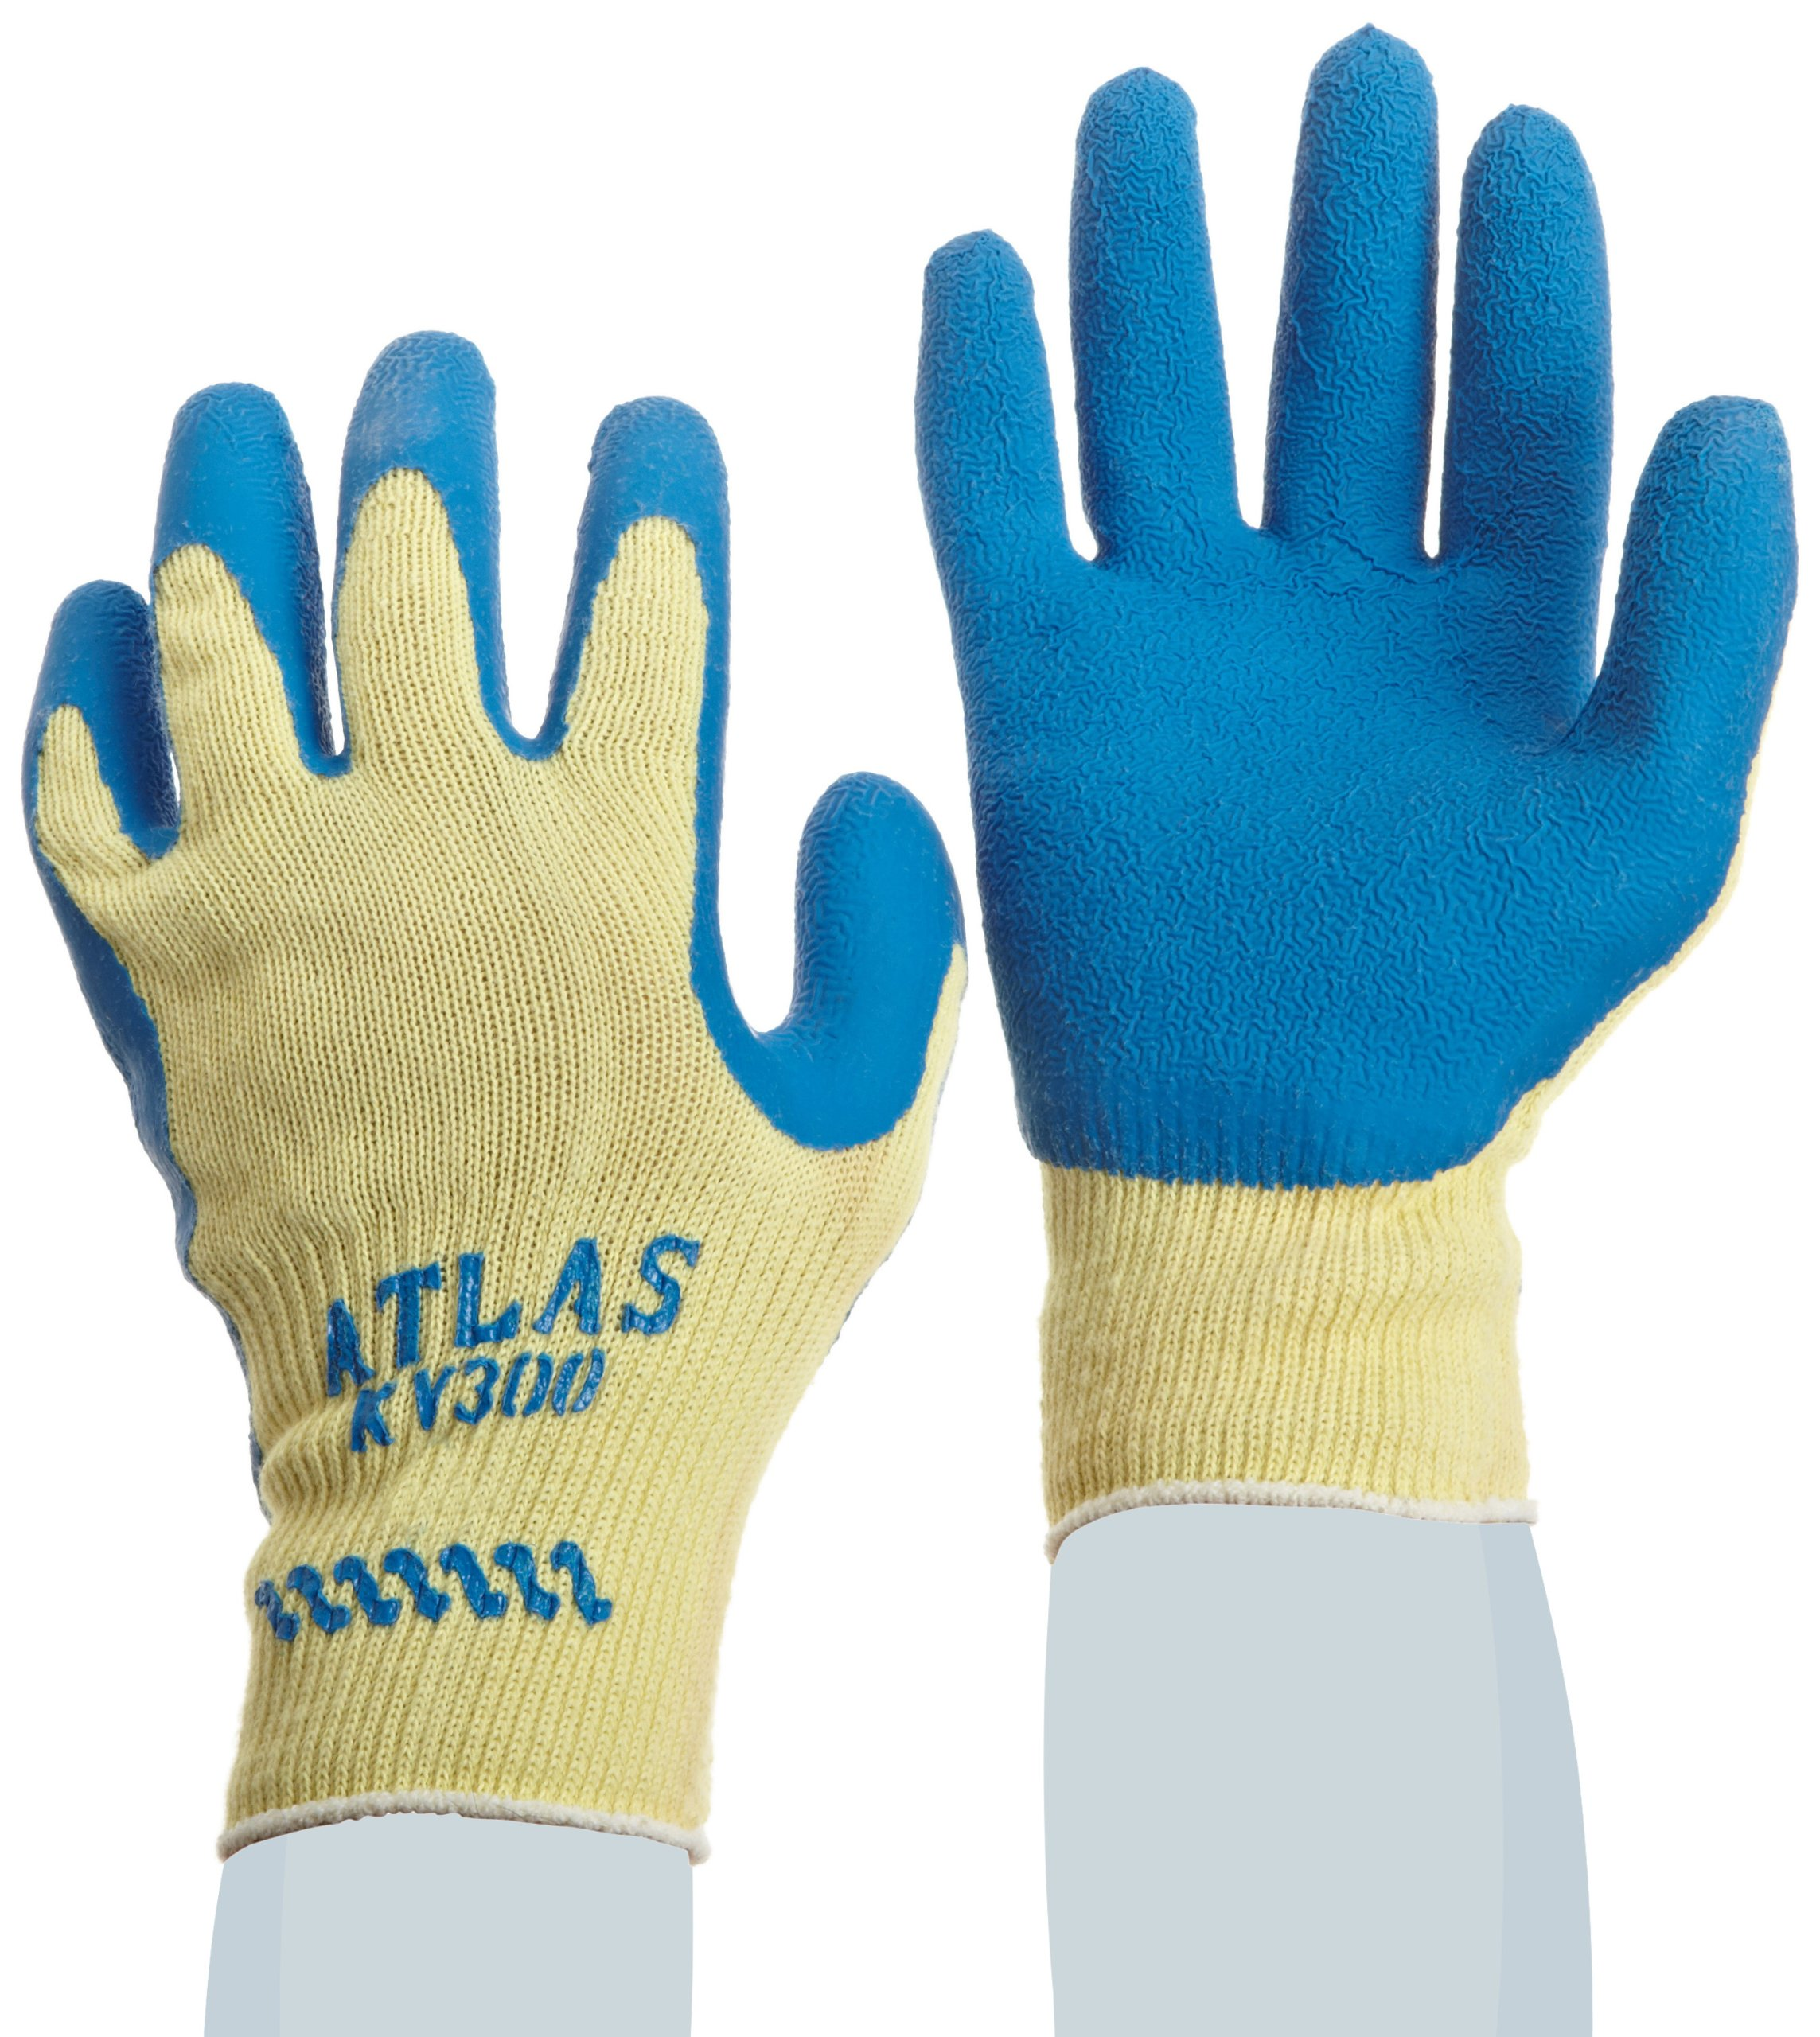 SHOWA Atlas KV300 Natural Rubber Palm Coating Glove, 10 Gauge Seamless Kevlar Liner, Cut Resistant, Small (Pack of 12 Pairs) by SHOWA (Image #1)